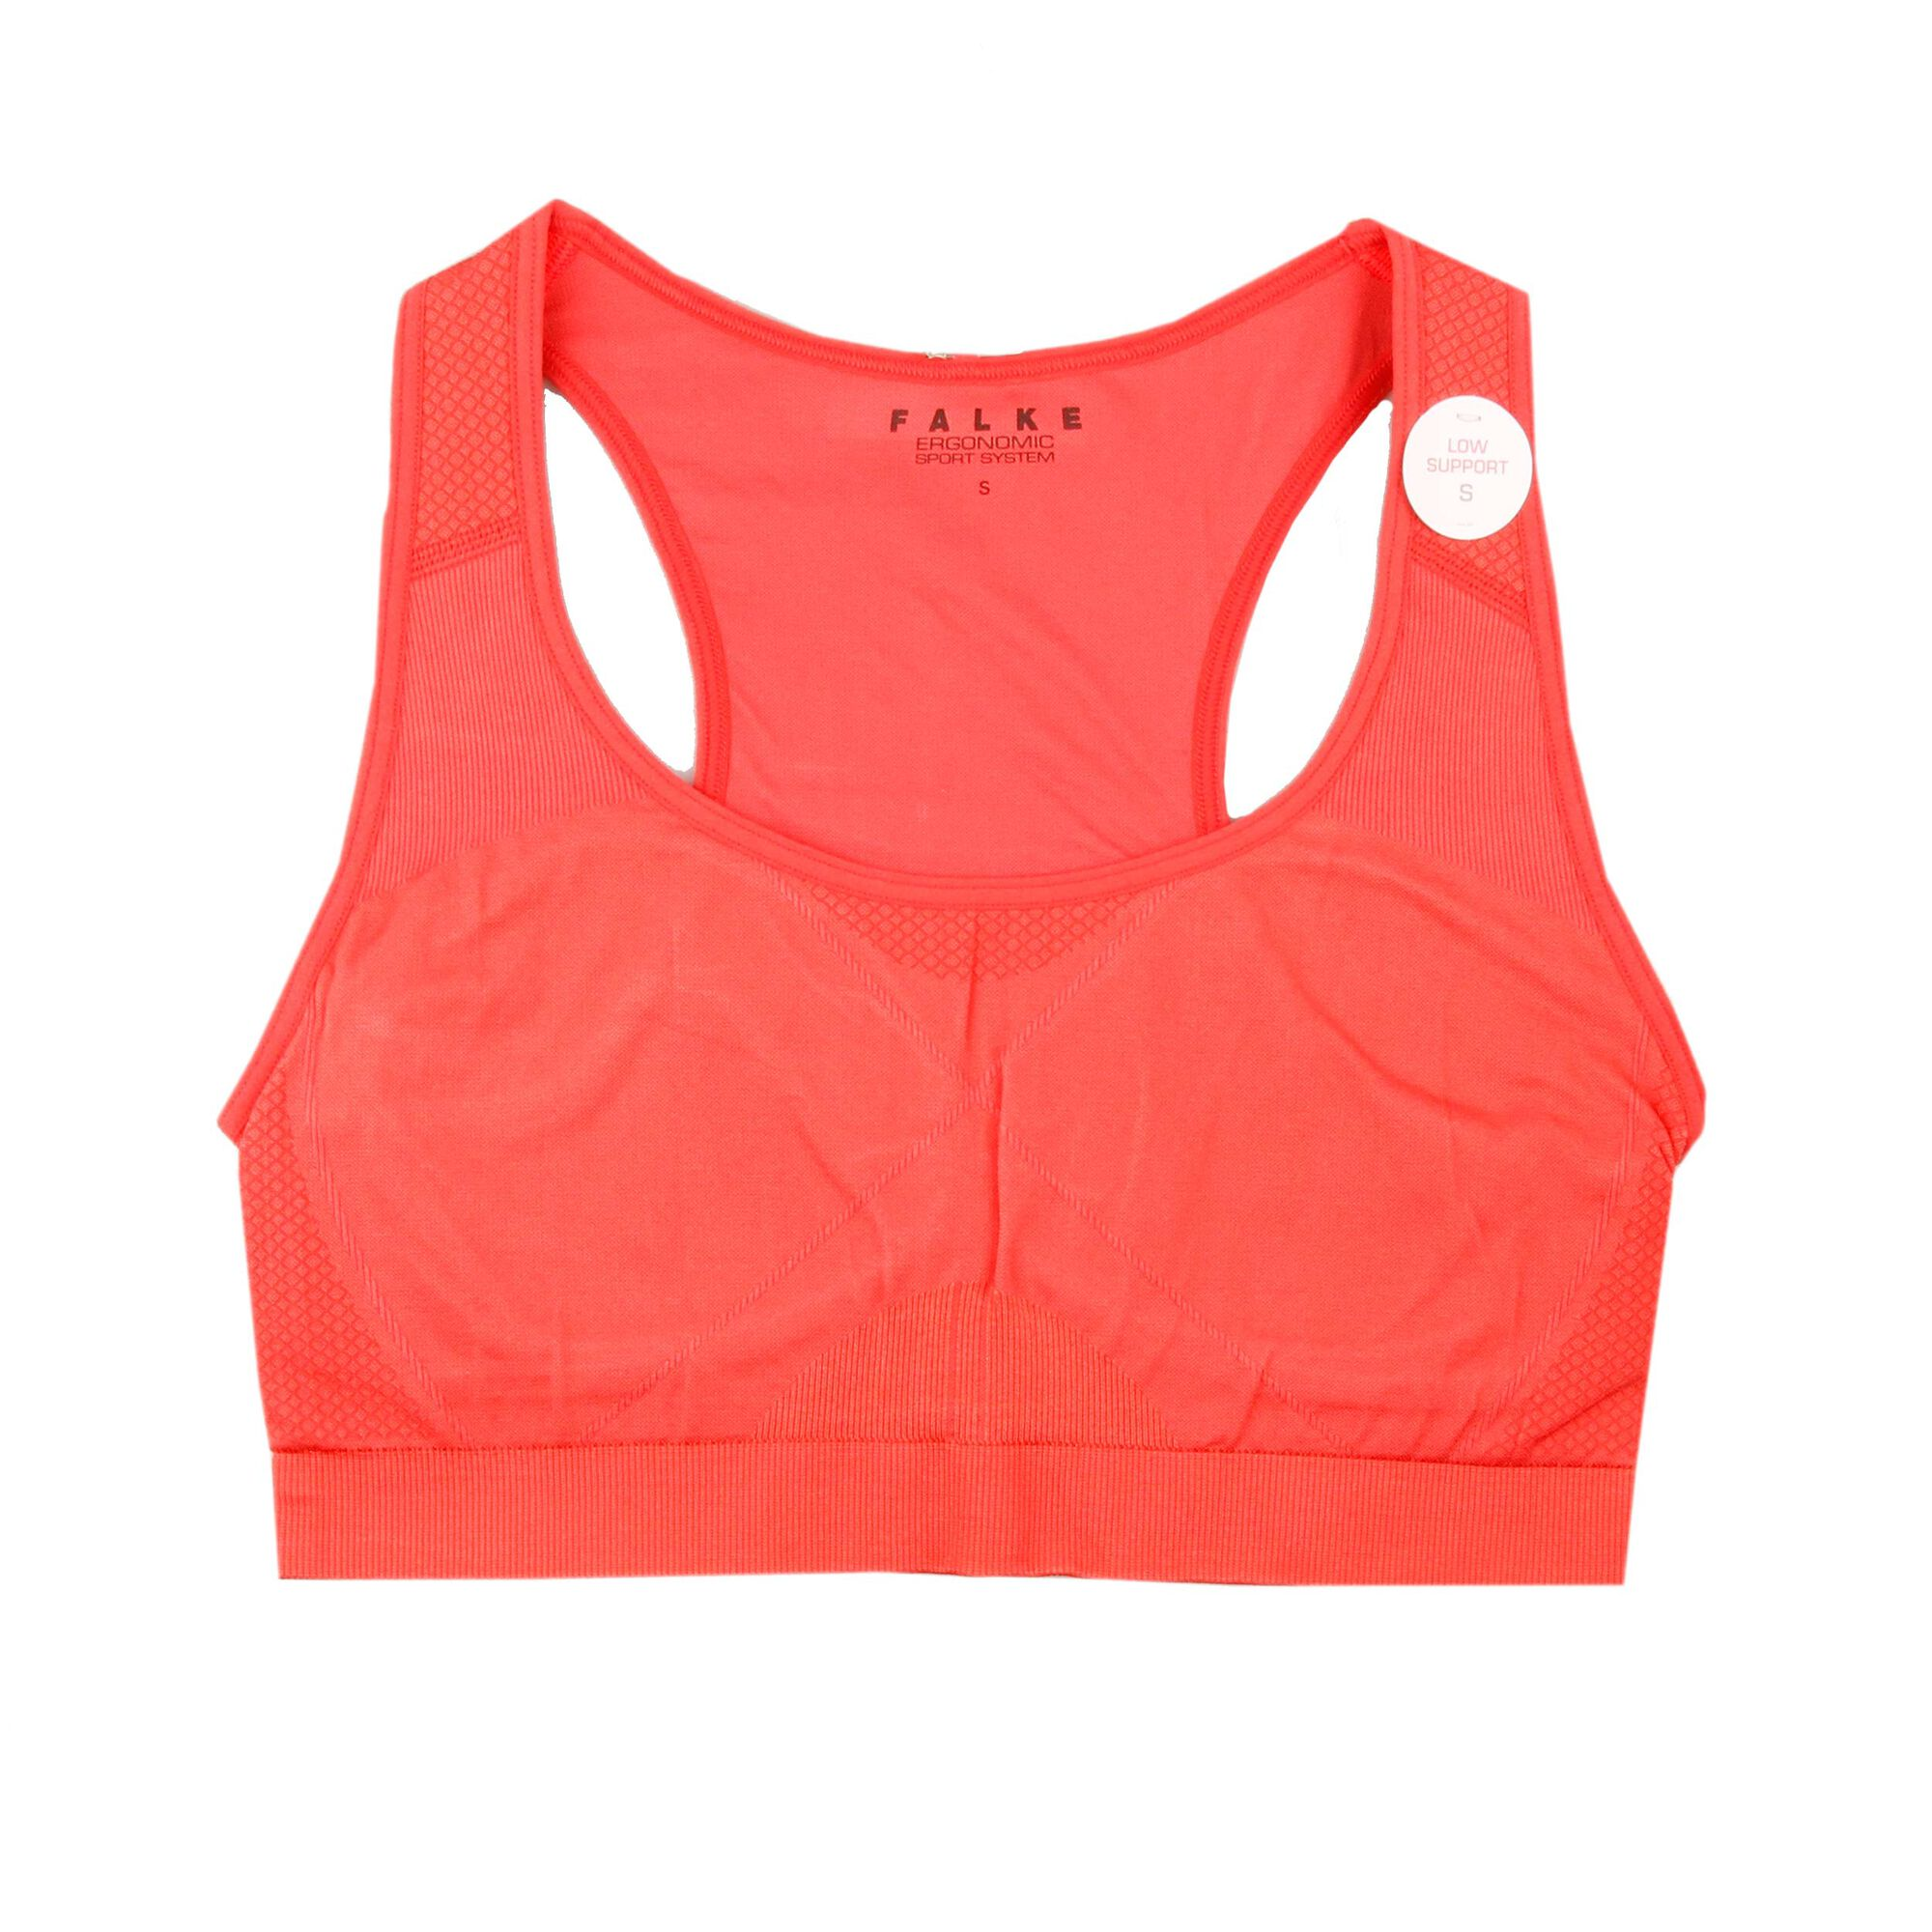 aabf8948c8751 buy Falke Bra Top Madison Sports Bras Women - Orange